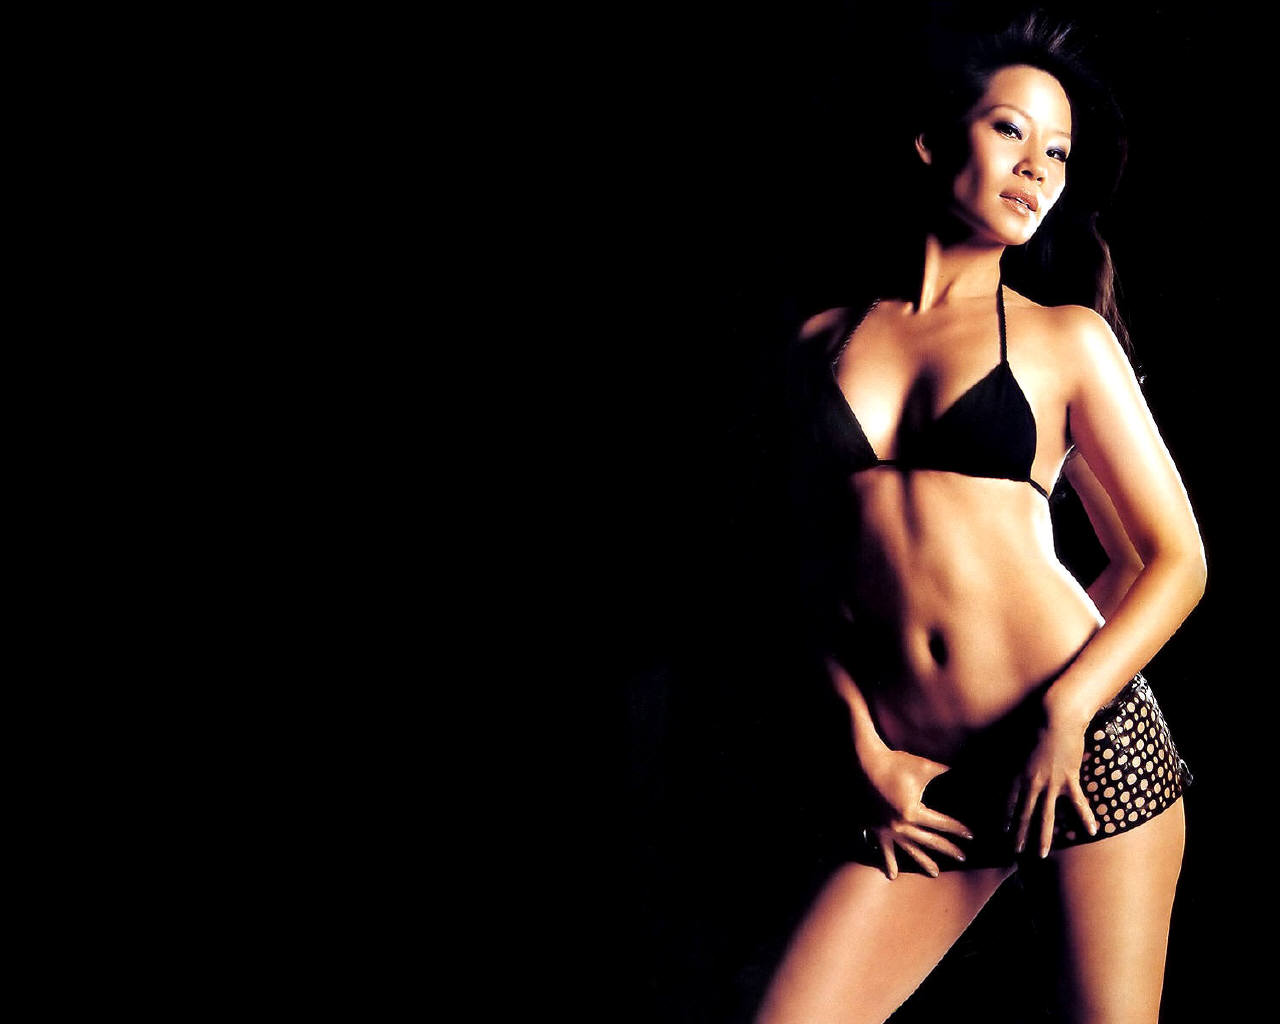 Lucy Liu - Lucy Liu Wallpaper (196230) - Fanpop